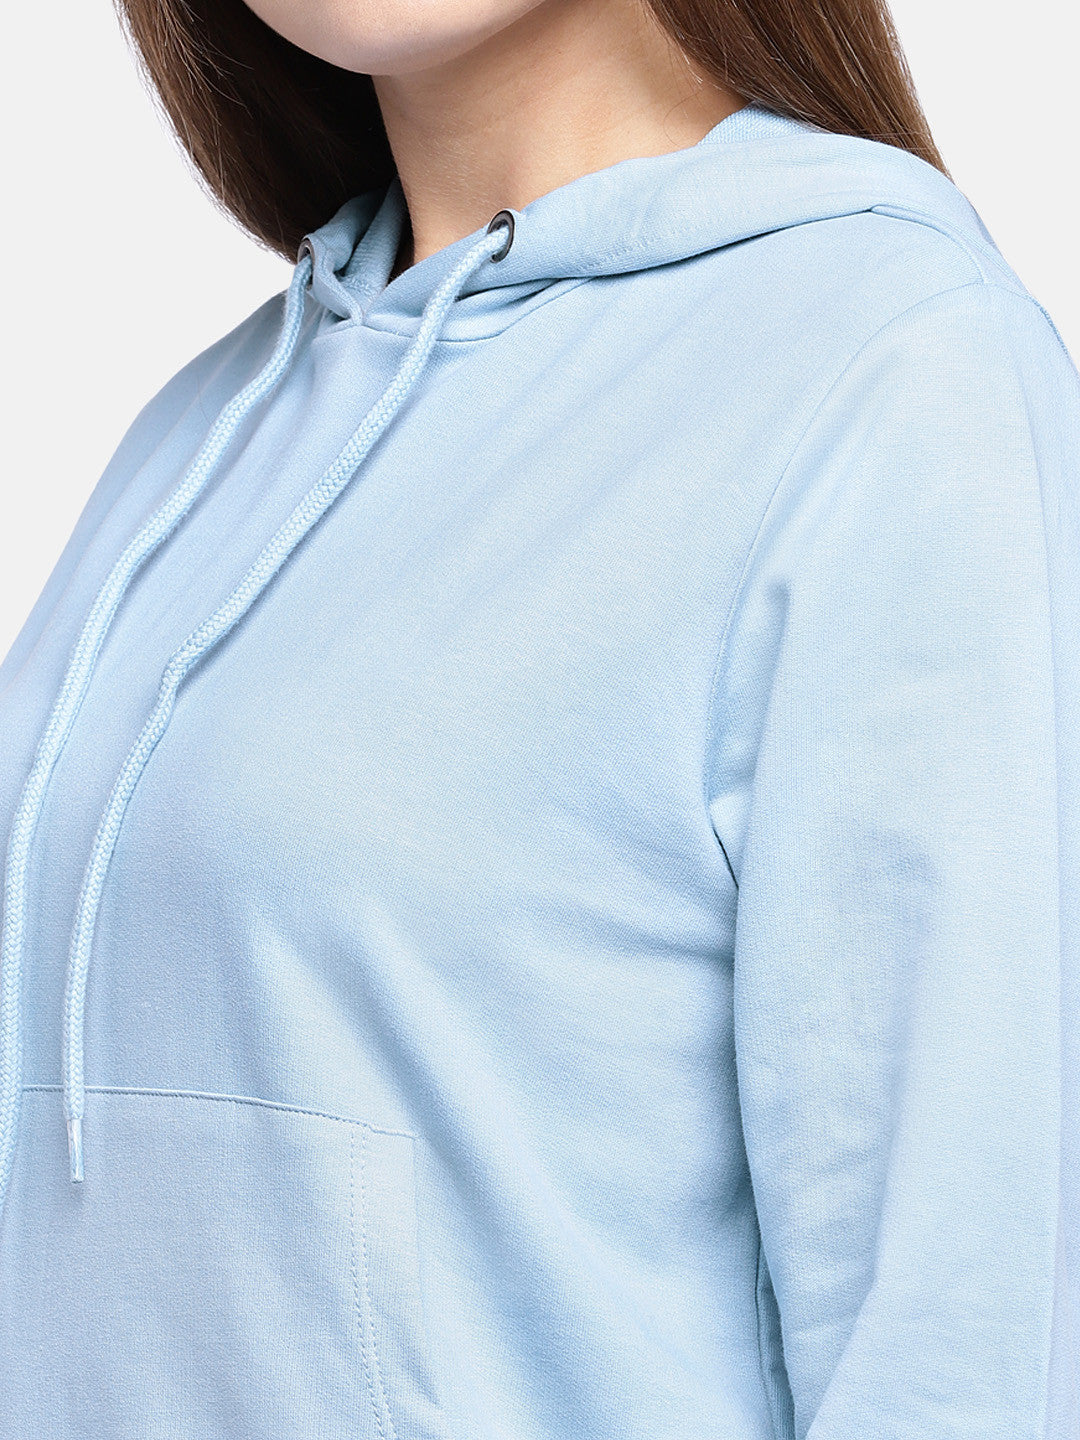 Blue Solid Hooded Sweatshirt-5